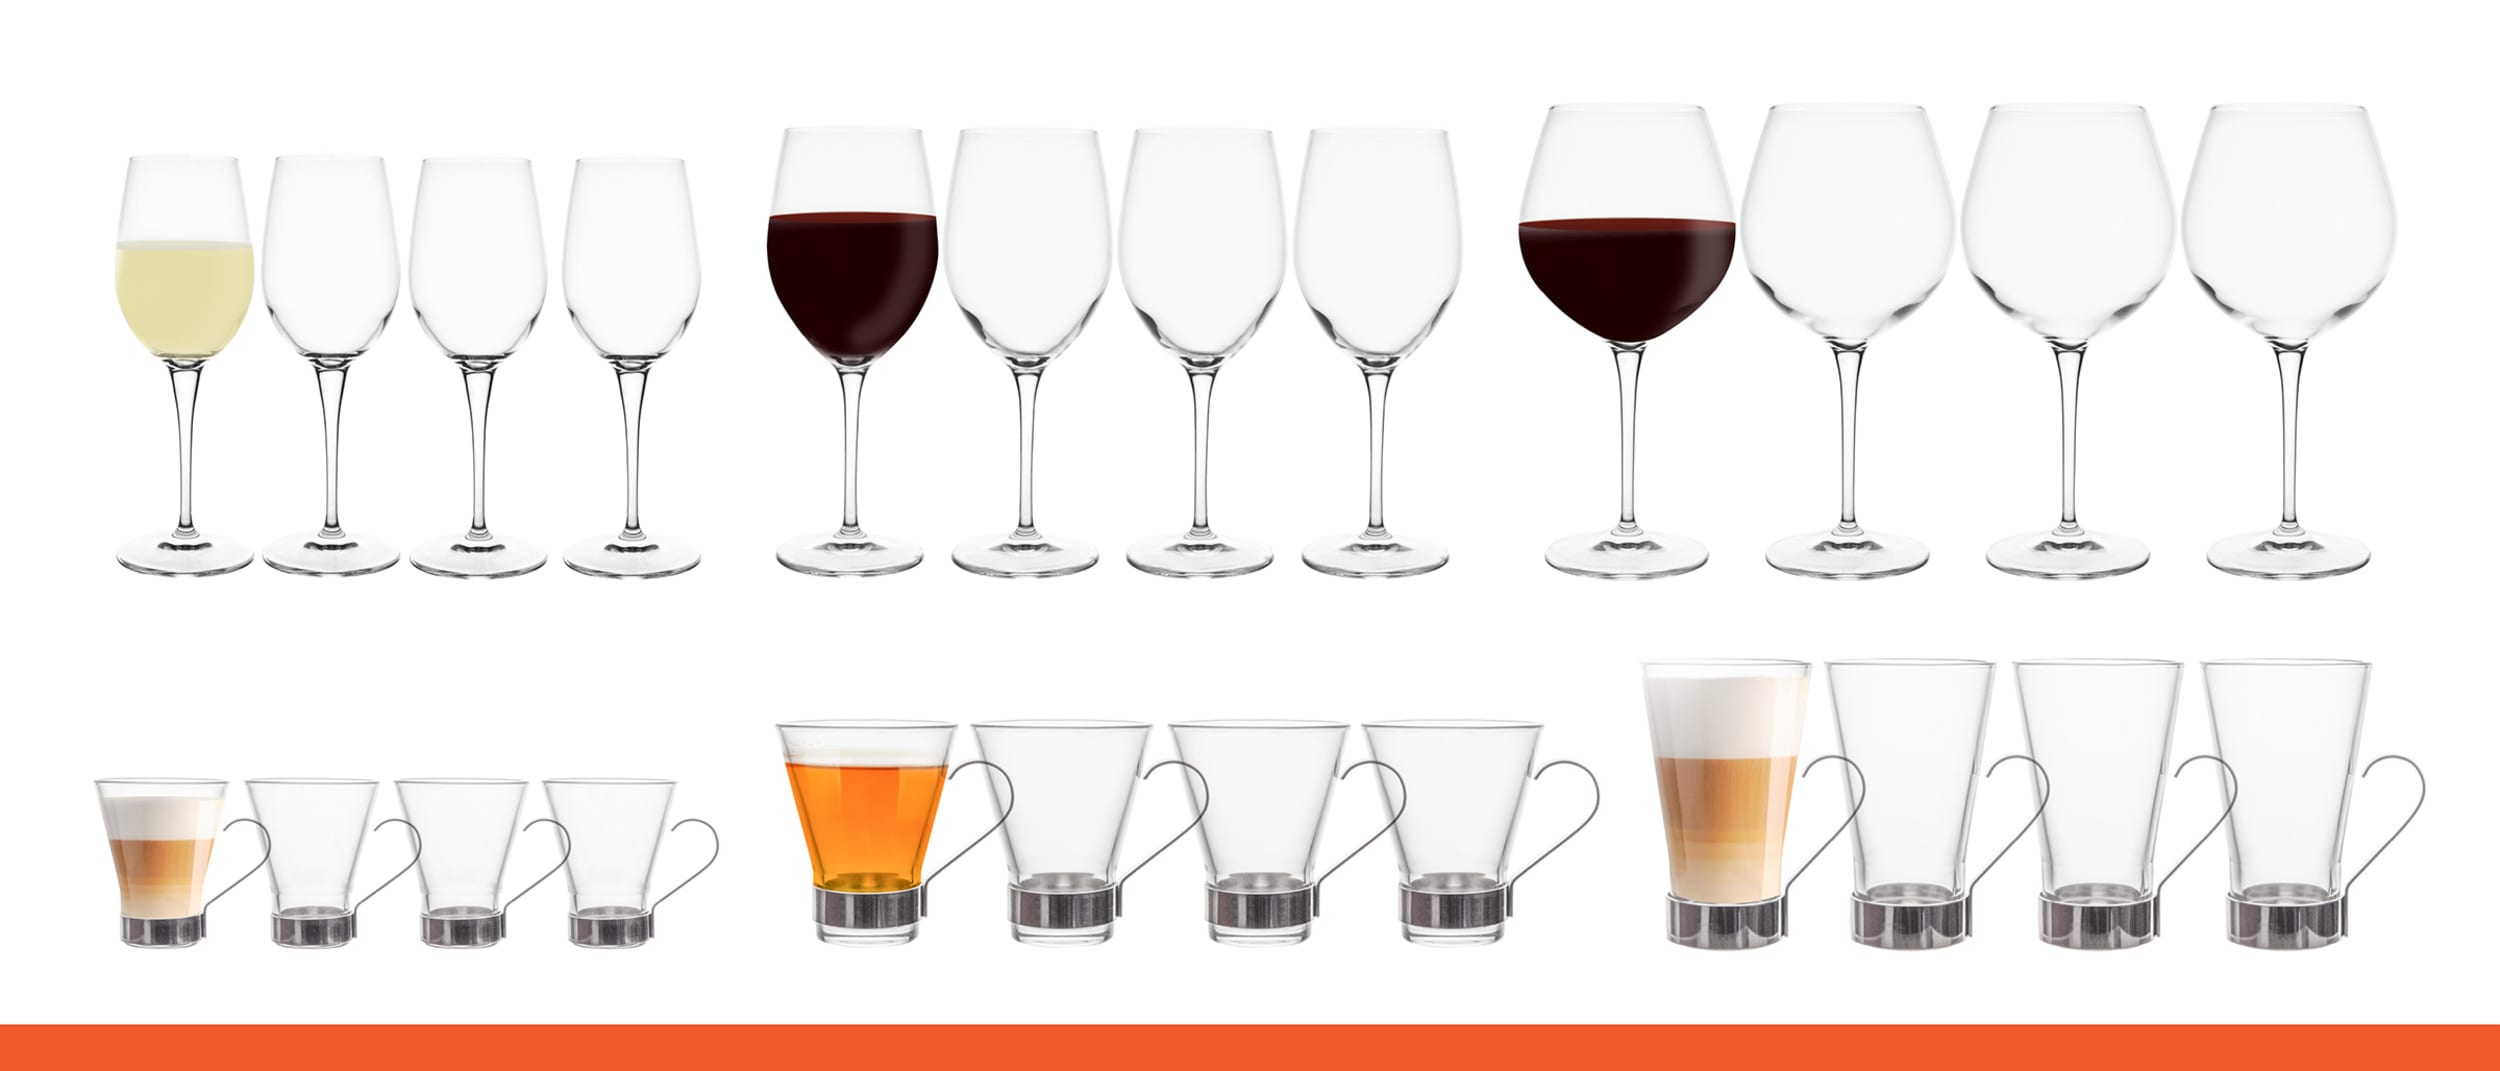 Wheel & Barrow: $20 for a set of 4 wine glasses or coffee glasses